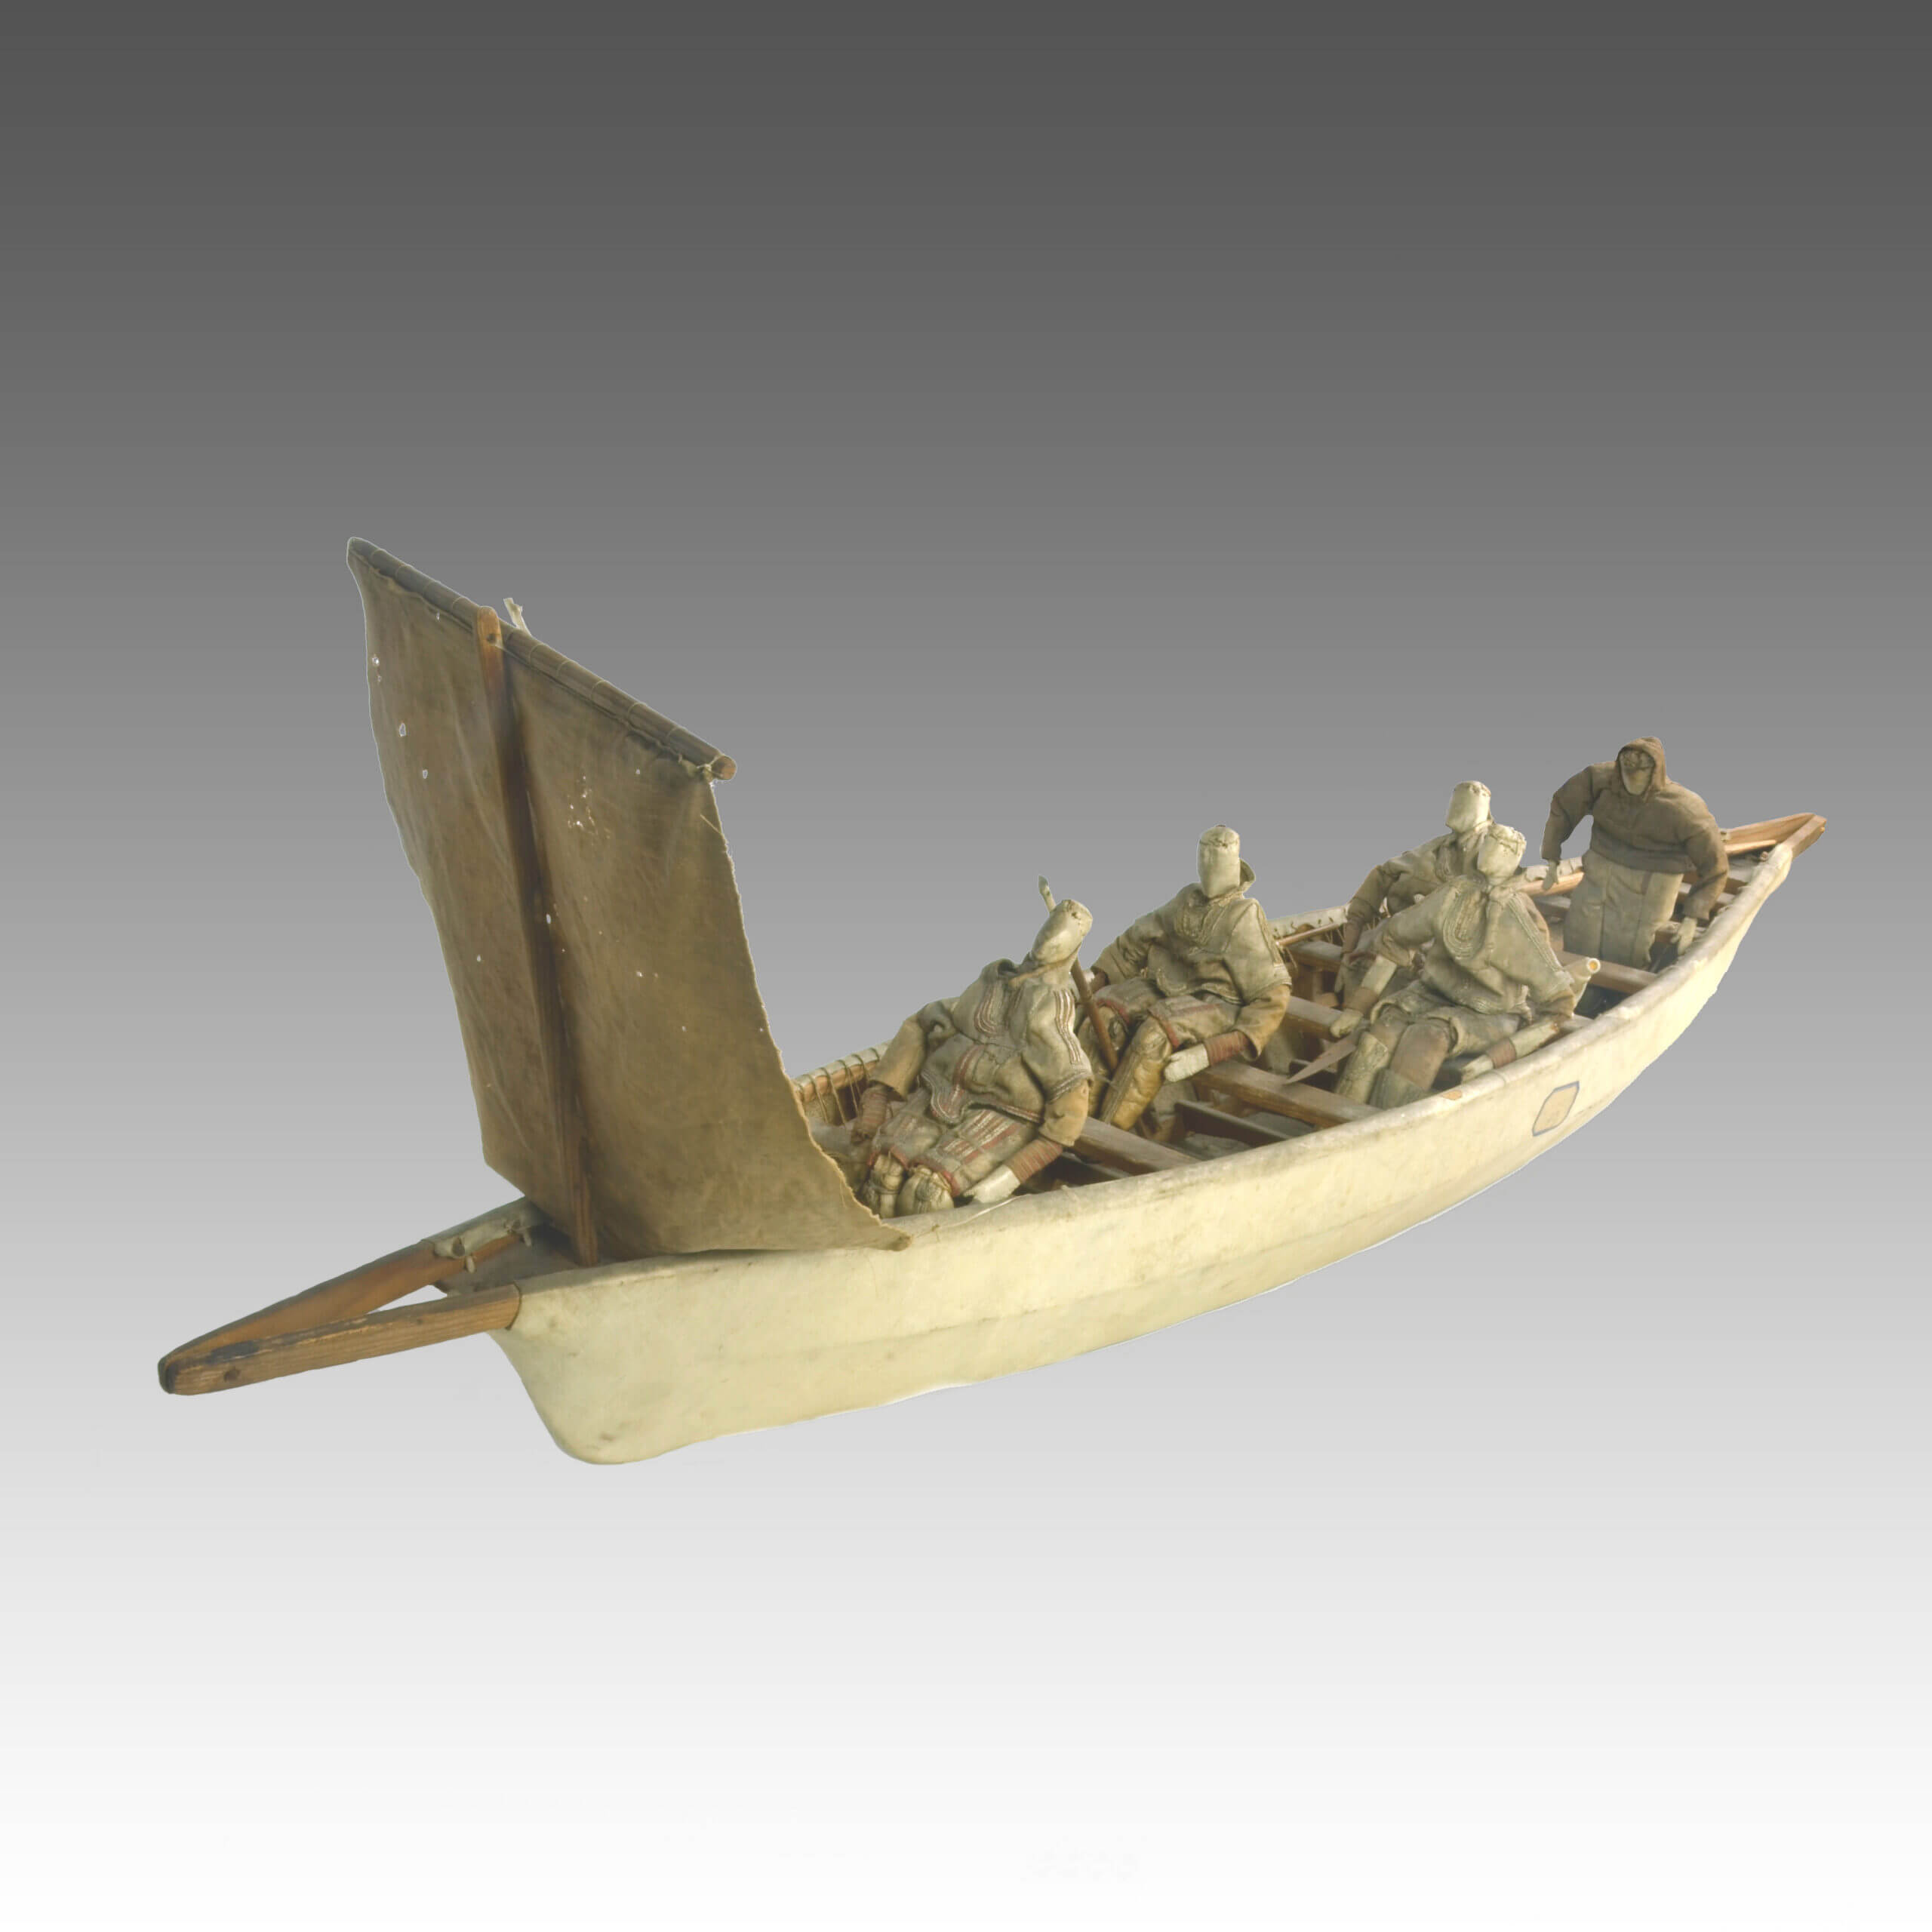 An antique Inuit Canoe model